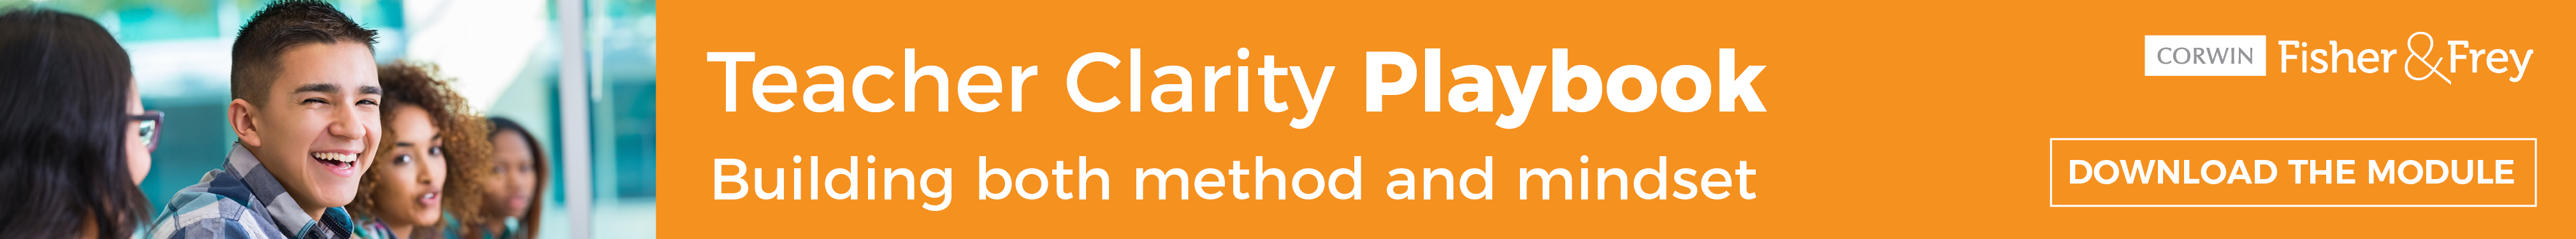 Teacher Clarity Playbook Learning Resources